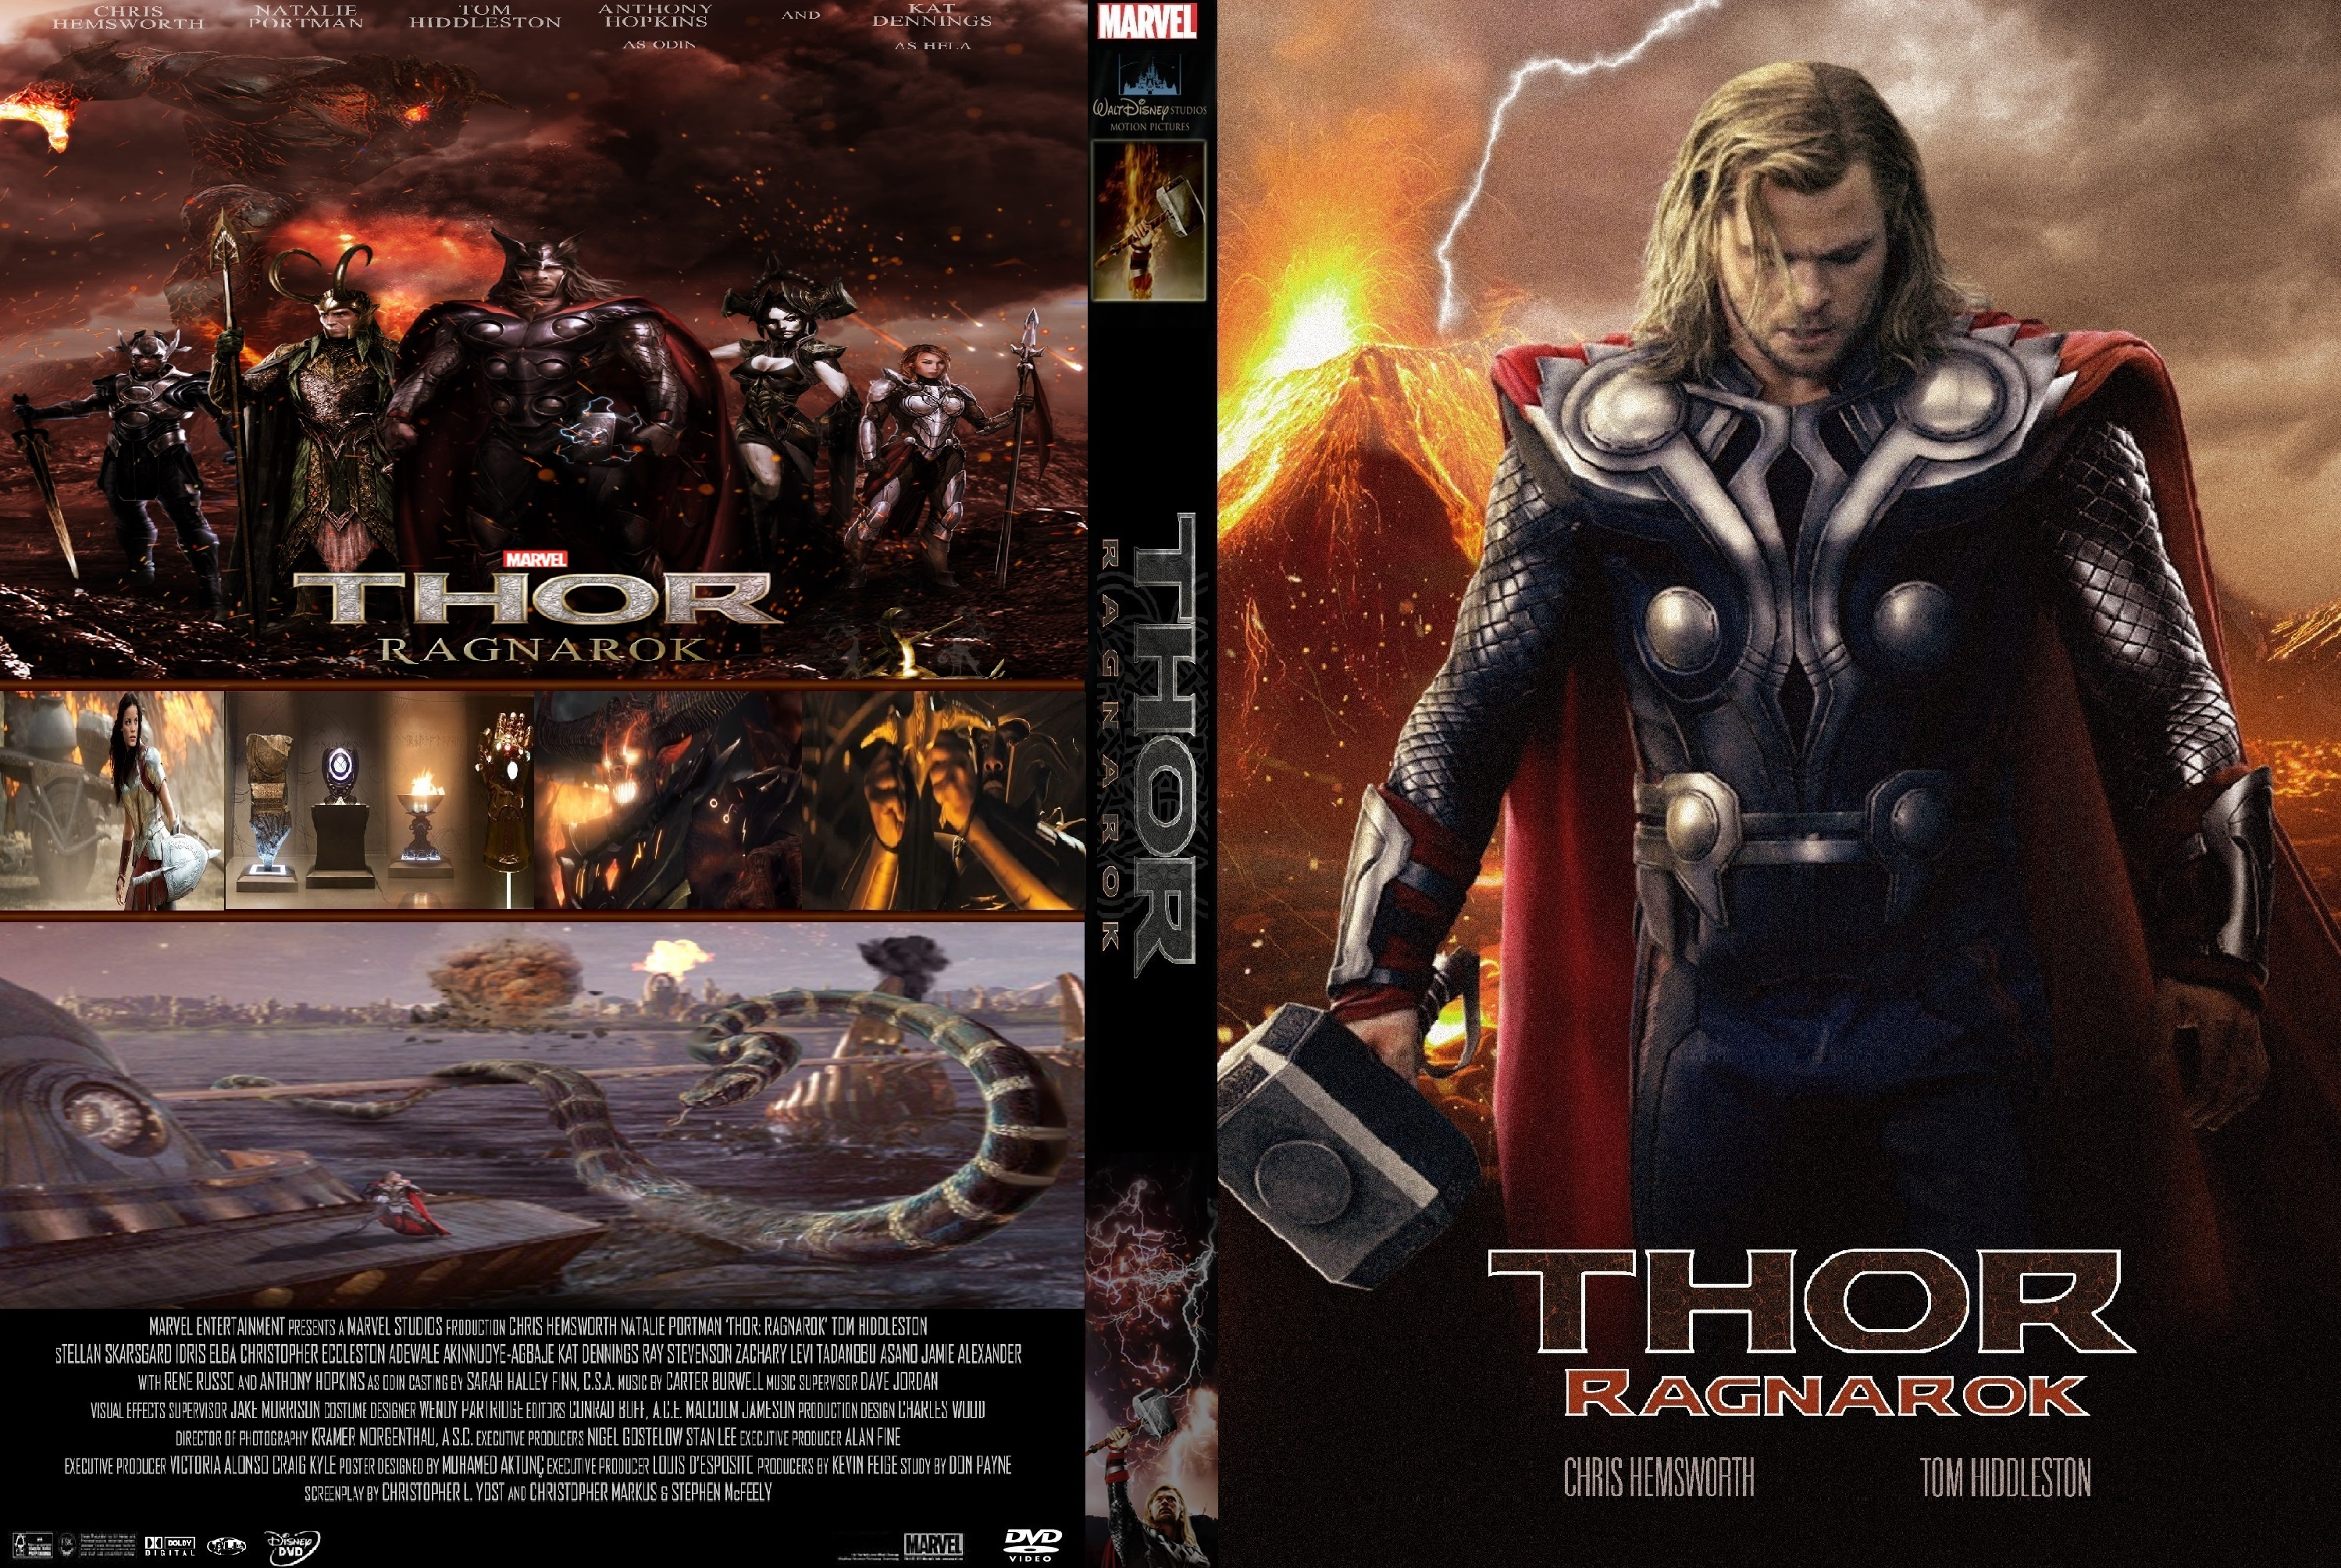 Thor Ragnarok 2017 Front Dvd Covers Cover Century Over 500 000 Album Art Covers For Free